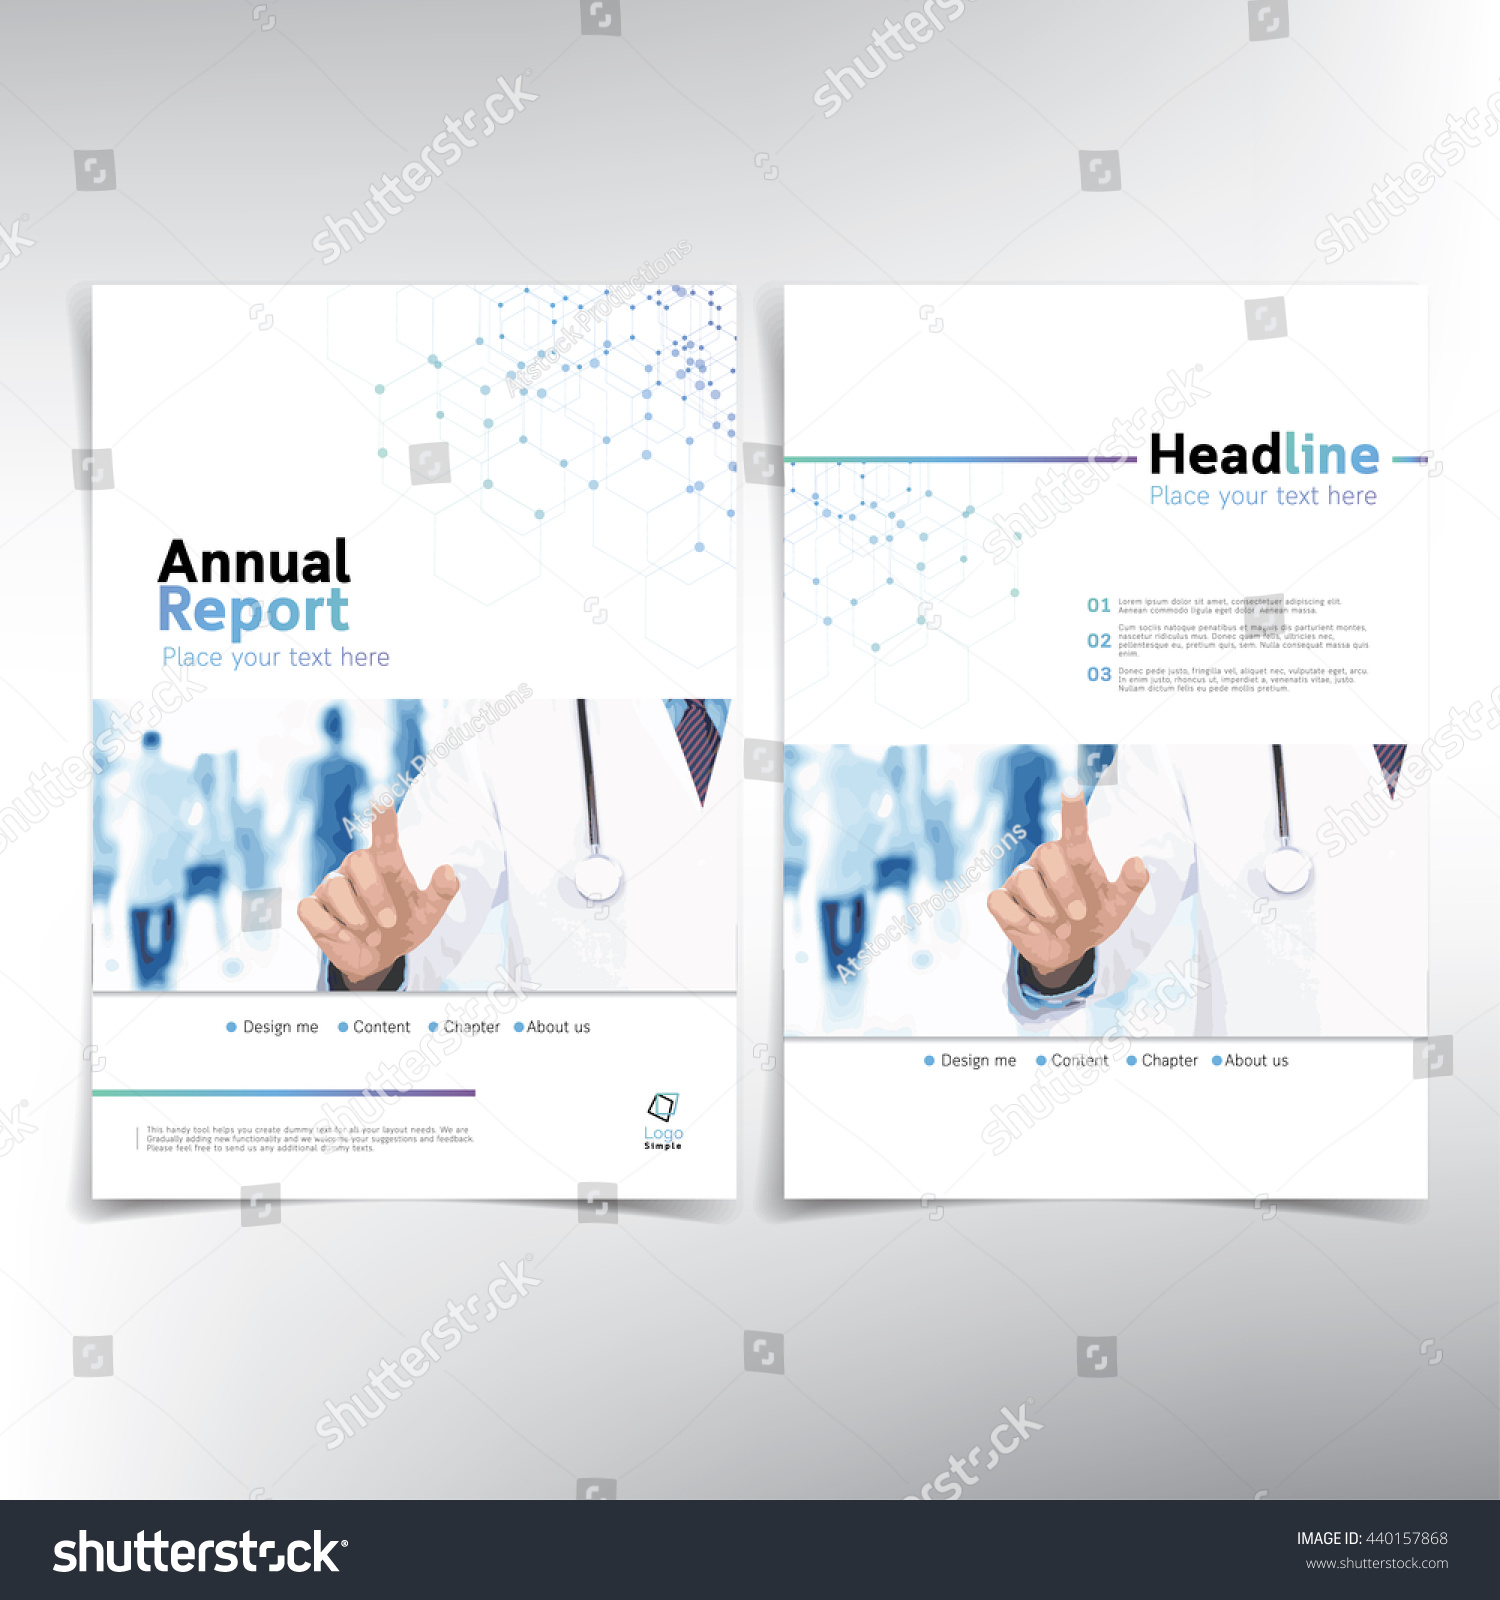 medical cover page vector template can stock vector  medical cover page vector template can be used for annual report flyer